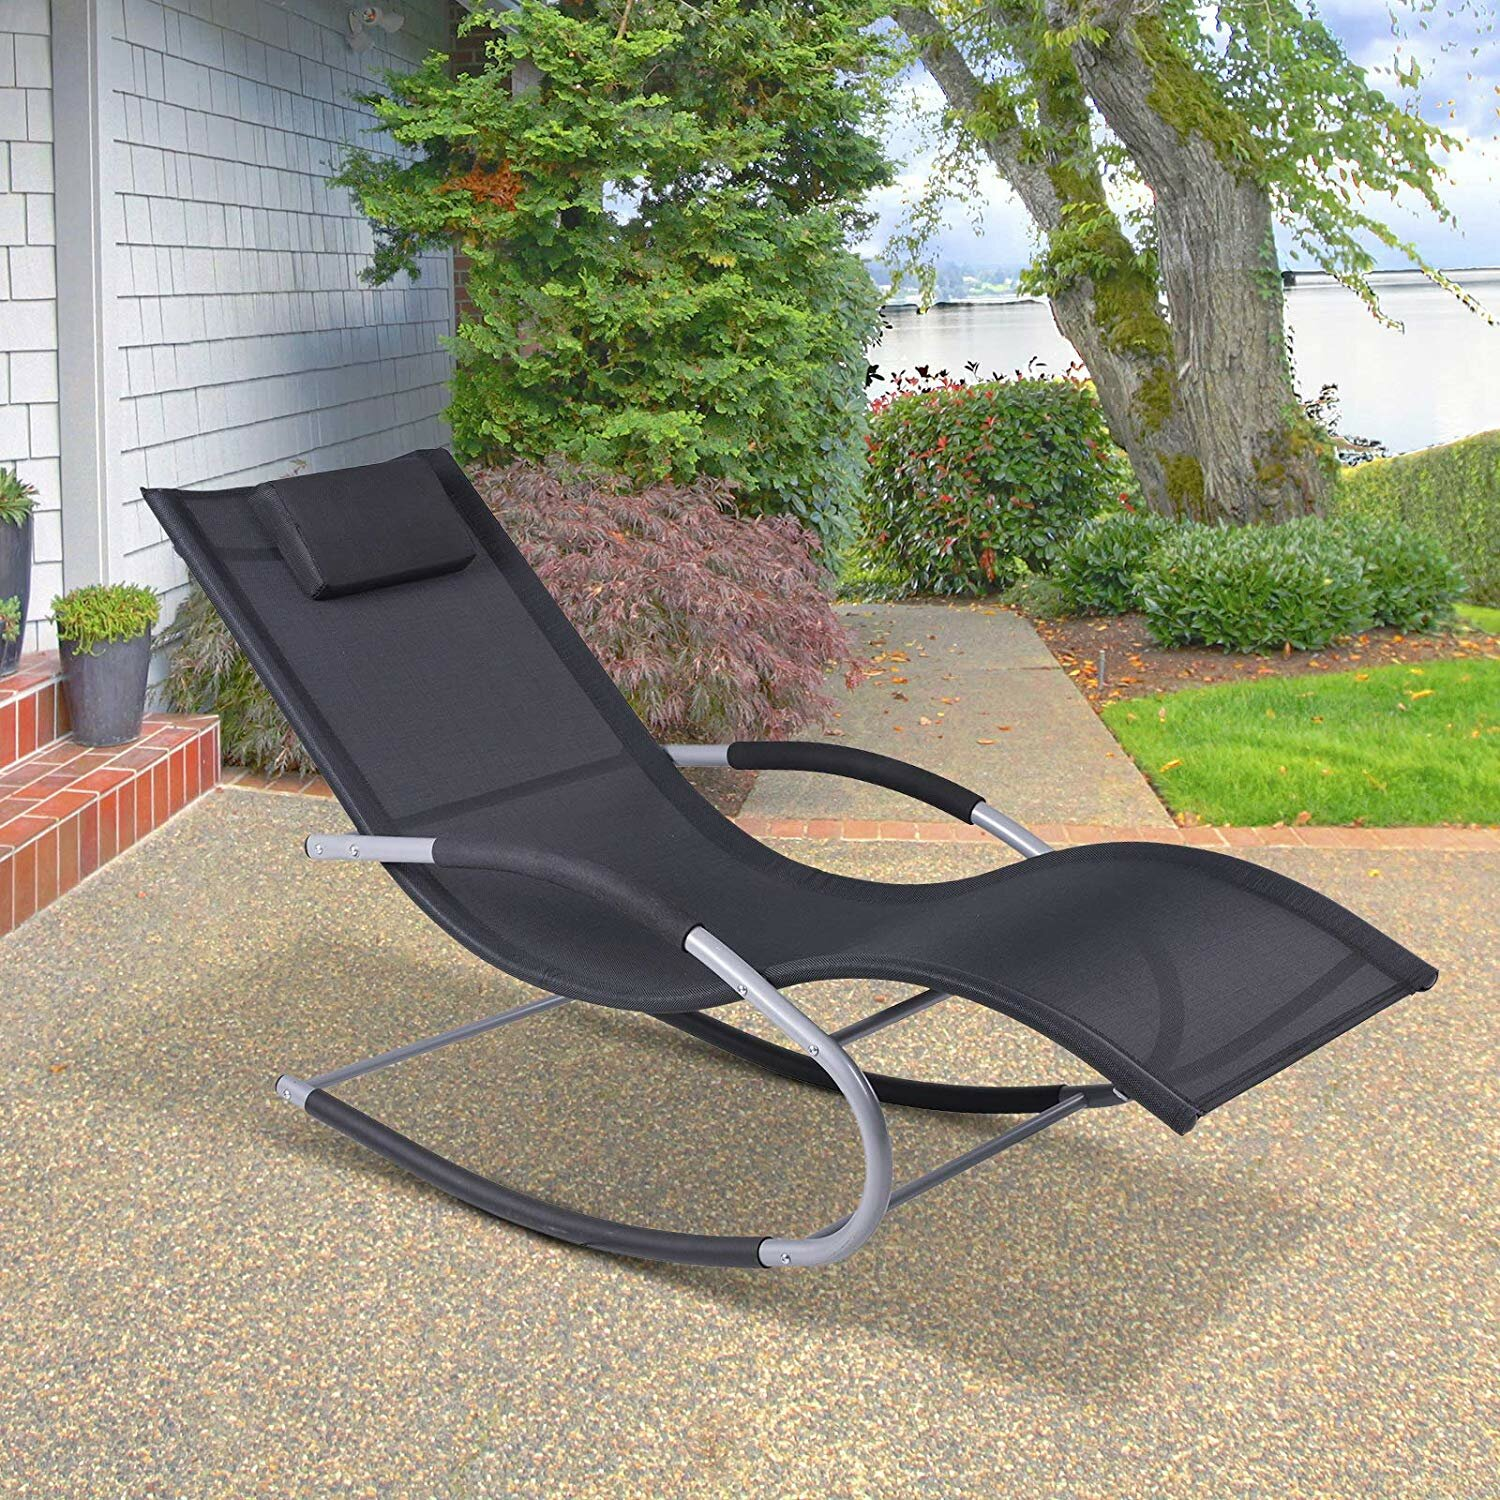 Gravity Rocker Shane Outdoor Zero Chair Poolside Wave Reclining rdxCBoe